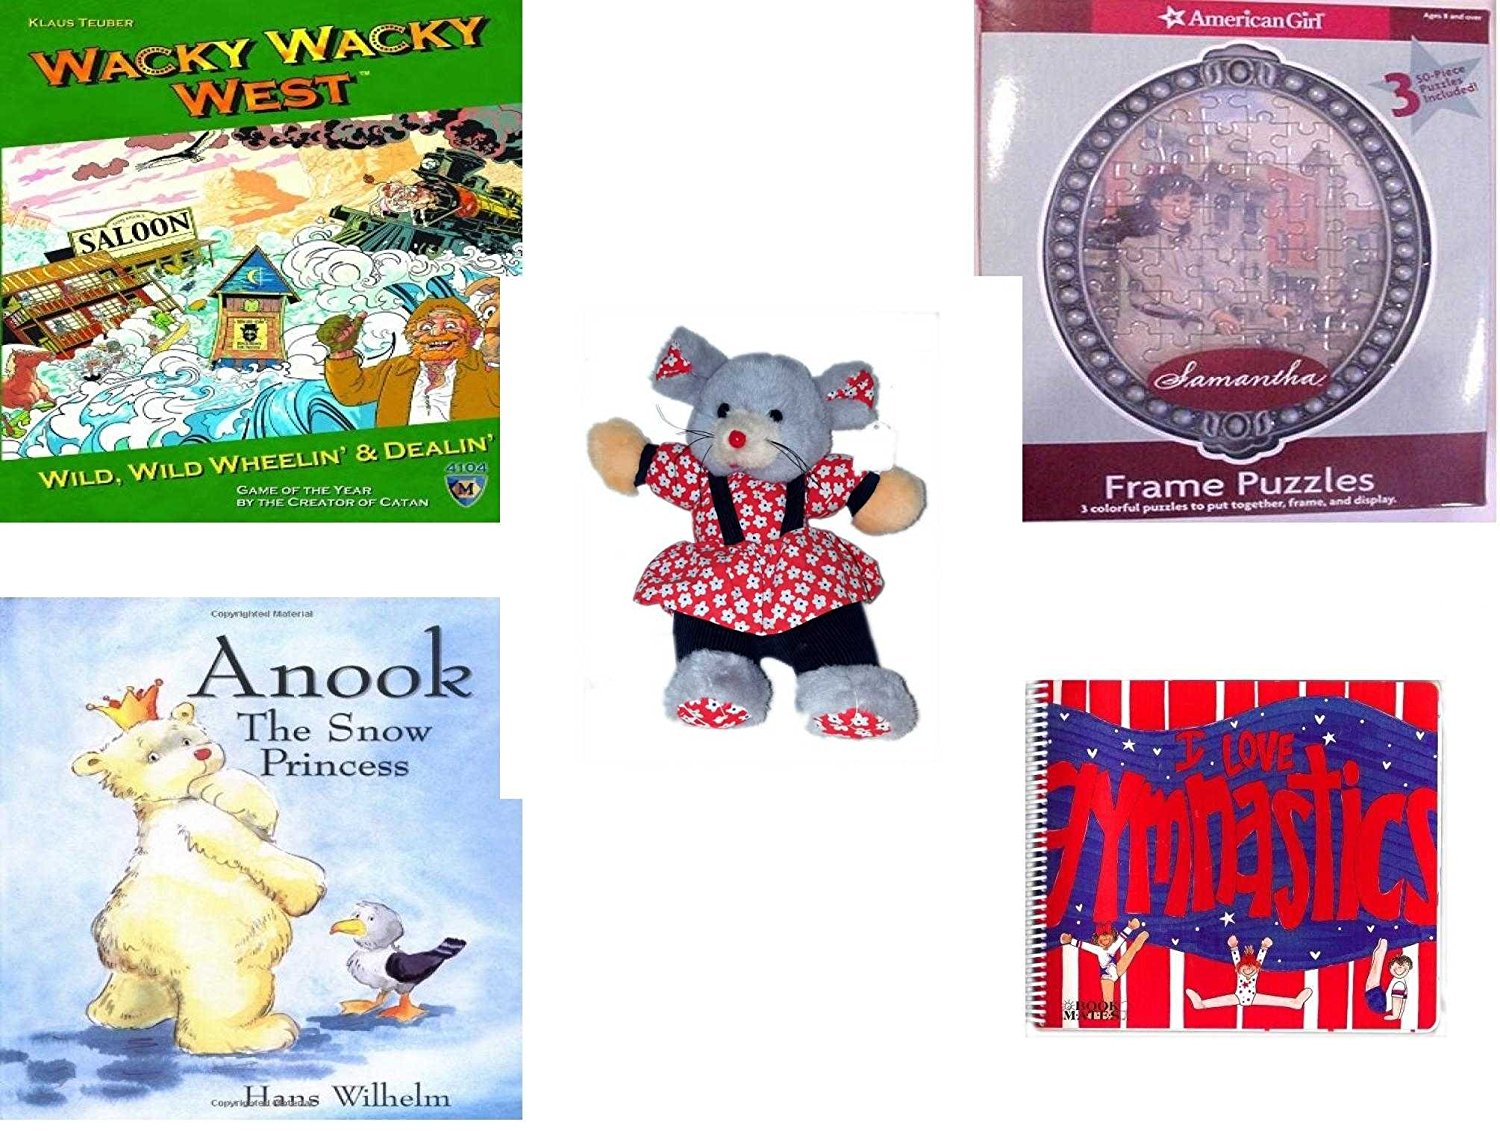 """Girl's Gift Bundle - Ages 6-12 [5 Piece] - Wacky Wacky West Game - American Girl Frame Puzzles Samantha. - Play-By-Play Red Flower Patterned Girl Mouse Plush 11"""" - Anook: The Snow Princess Hardcover"""